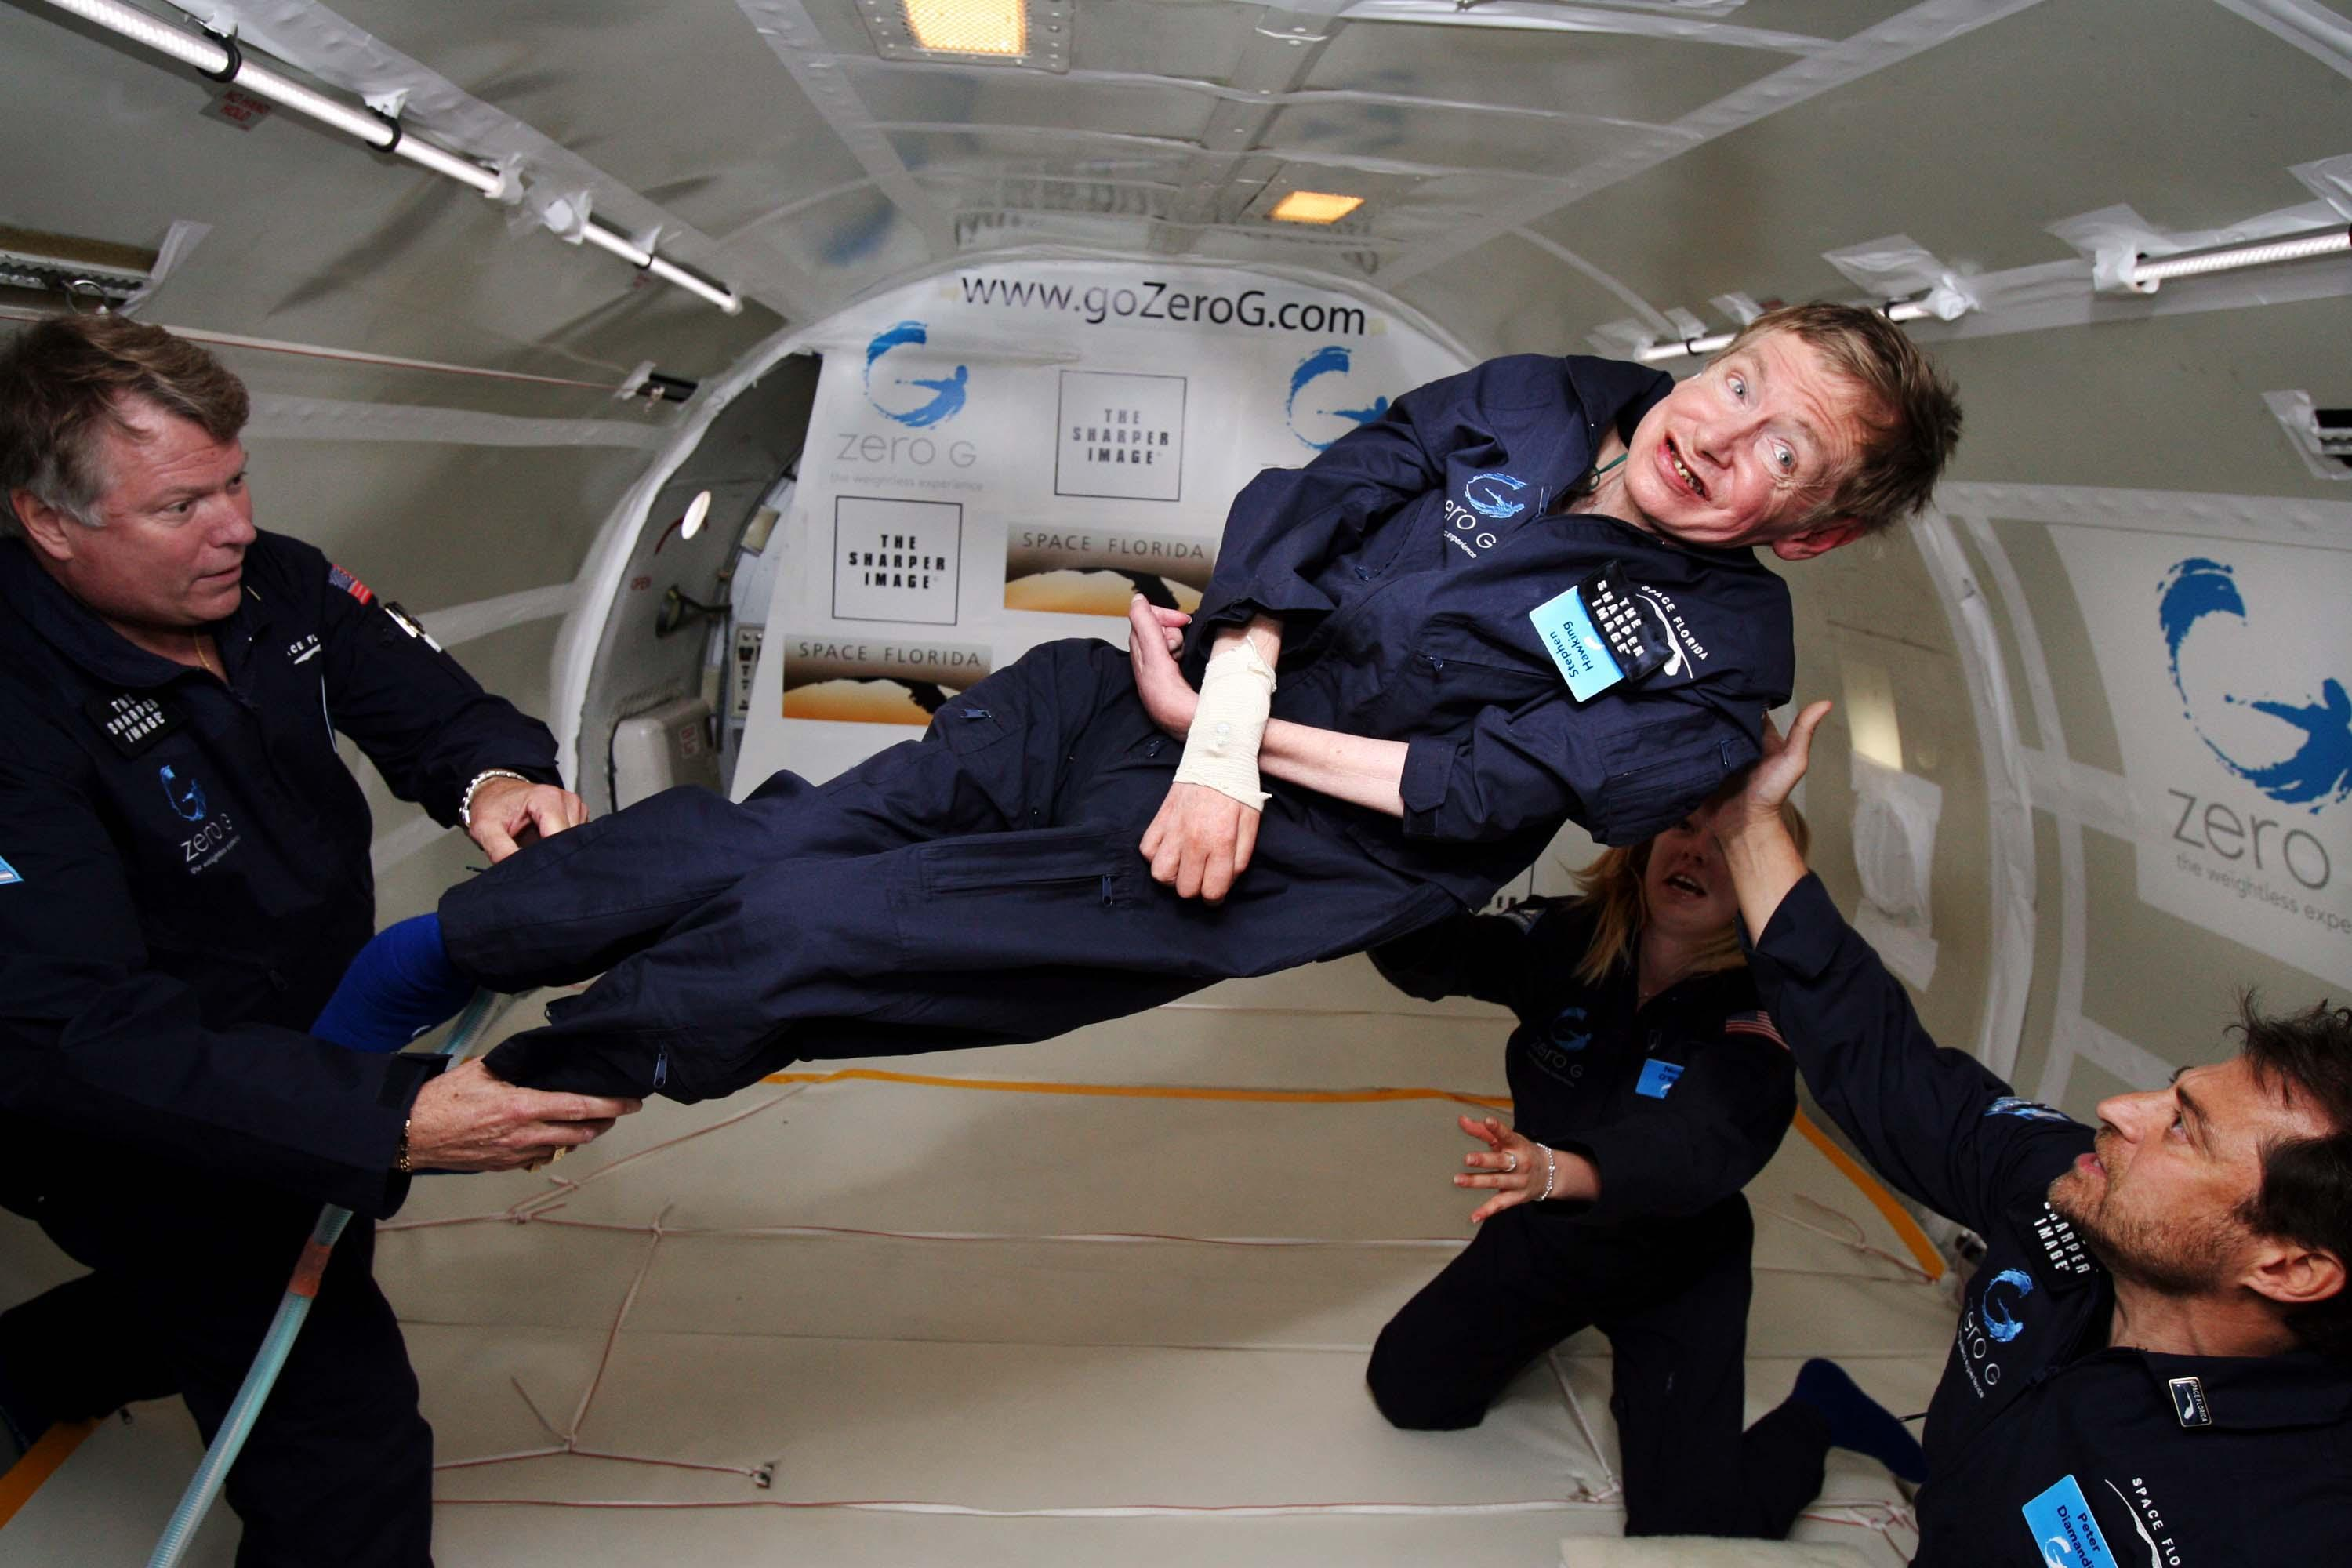 It's time to fly like an eagle, baby! Zero G, a zero gravity experience is coming to Seattle for one day only on August 25th and it is literally a flight where you can experience weightlessness through zero gravity. The five hour experience will include 15 parabolic maneuvers that creates 20-30 seconds of weightlessness each. The price per person is $4,950 + 5% tax (Image courtesy of Zero G).